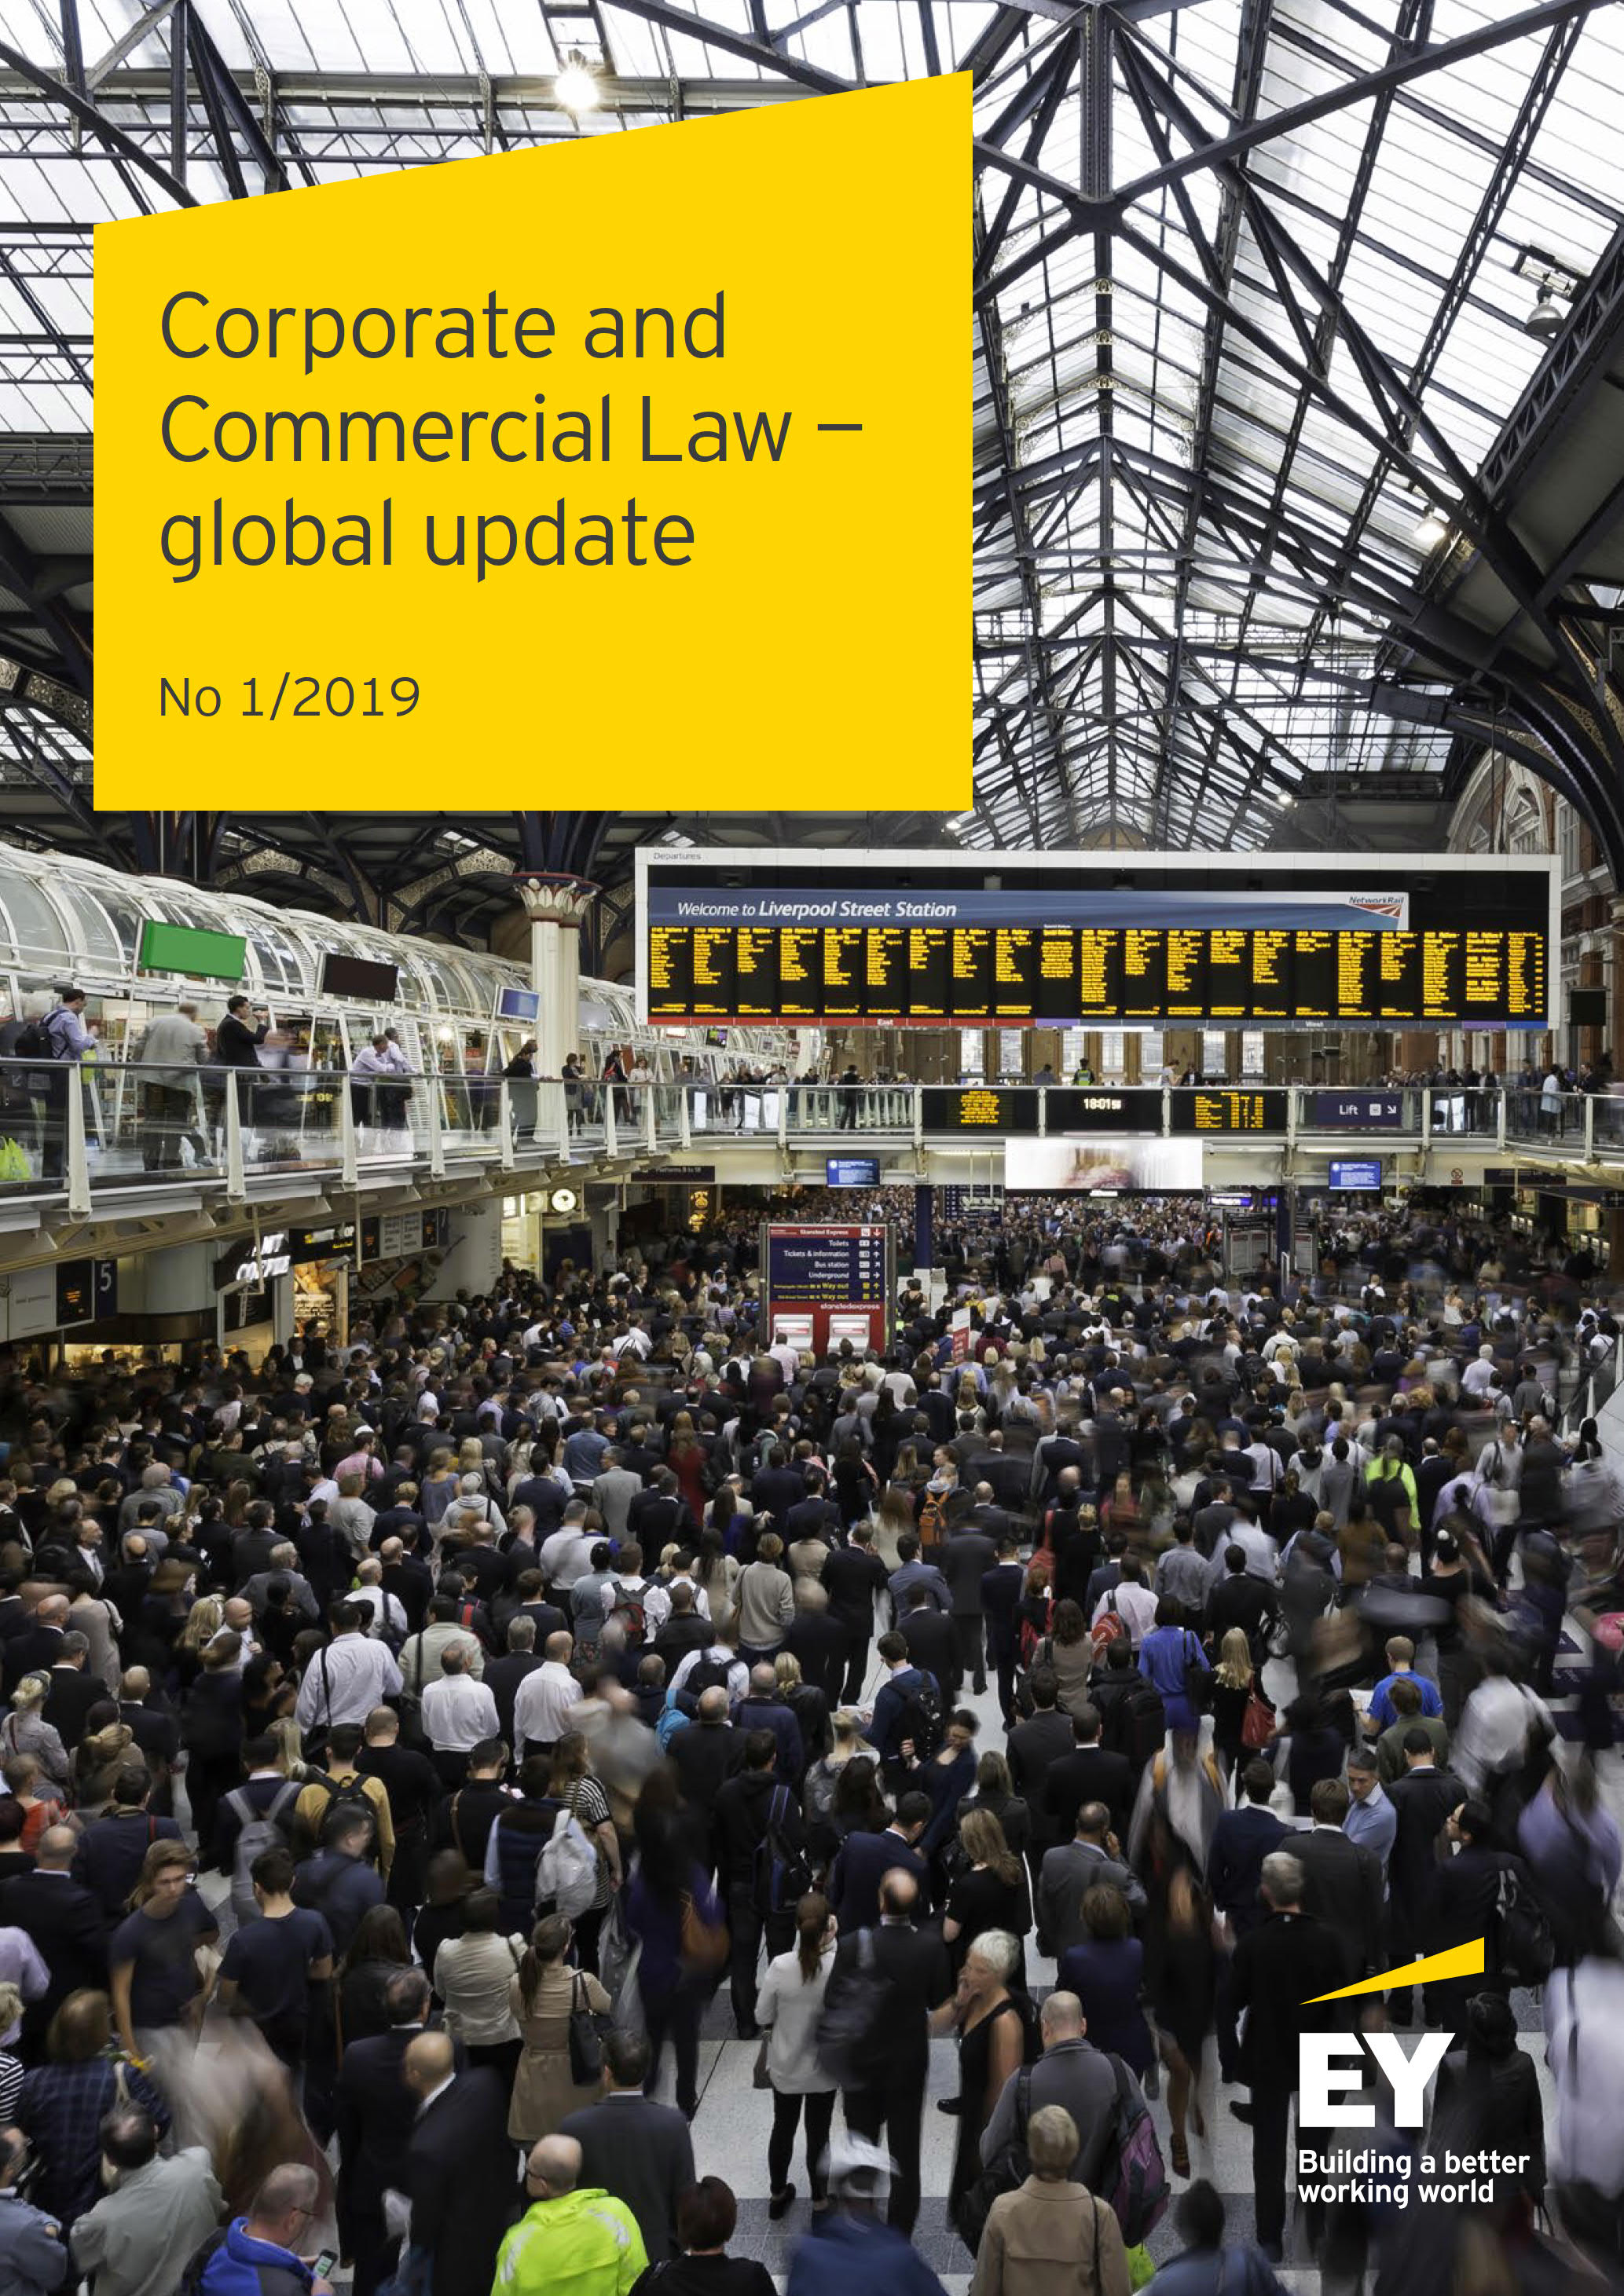 Corporate and Commercial Law – global update No 1/2019